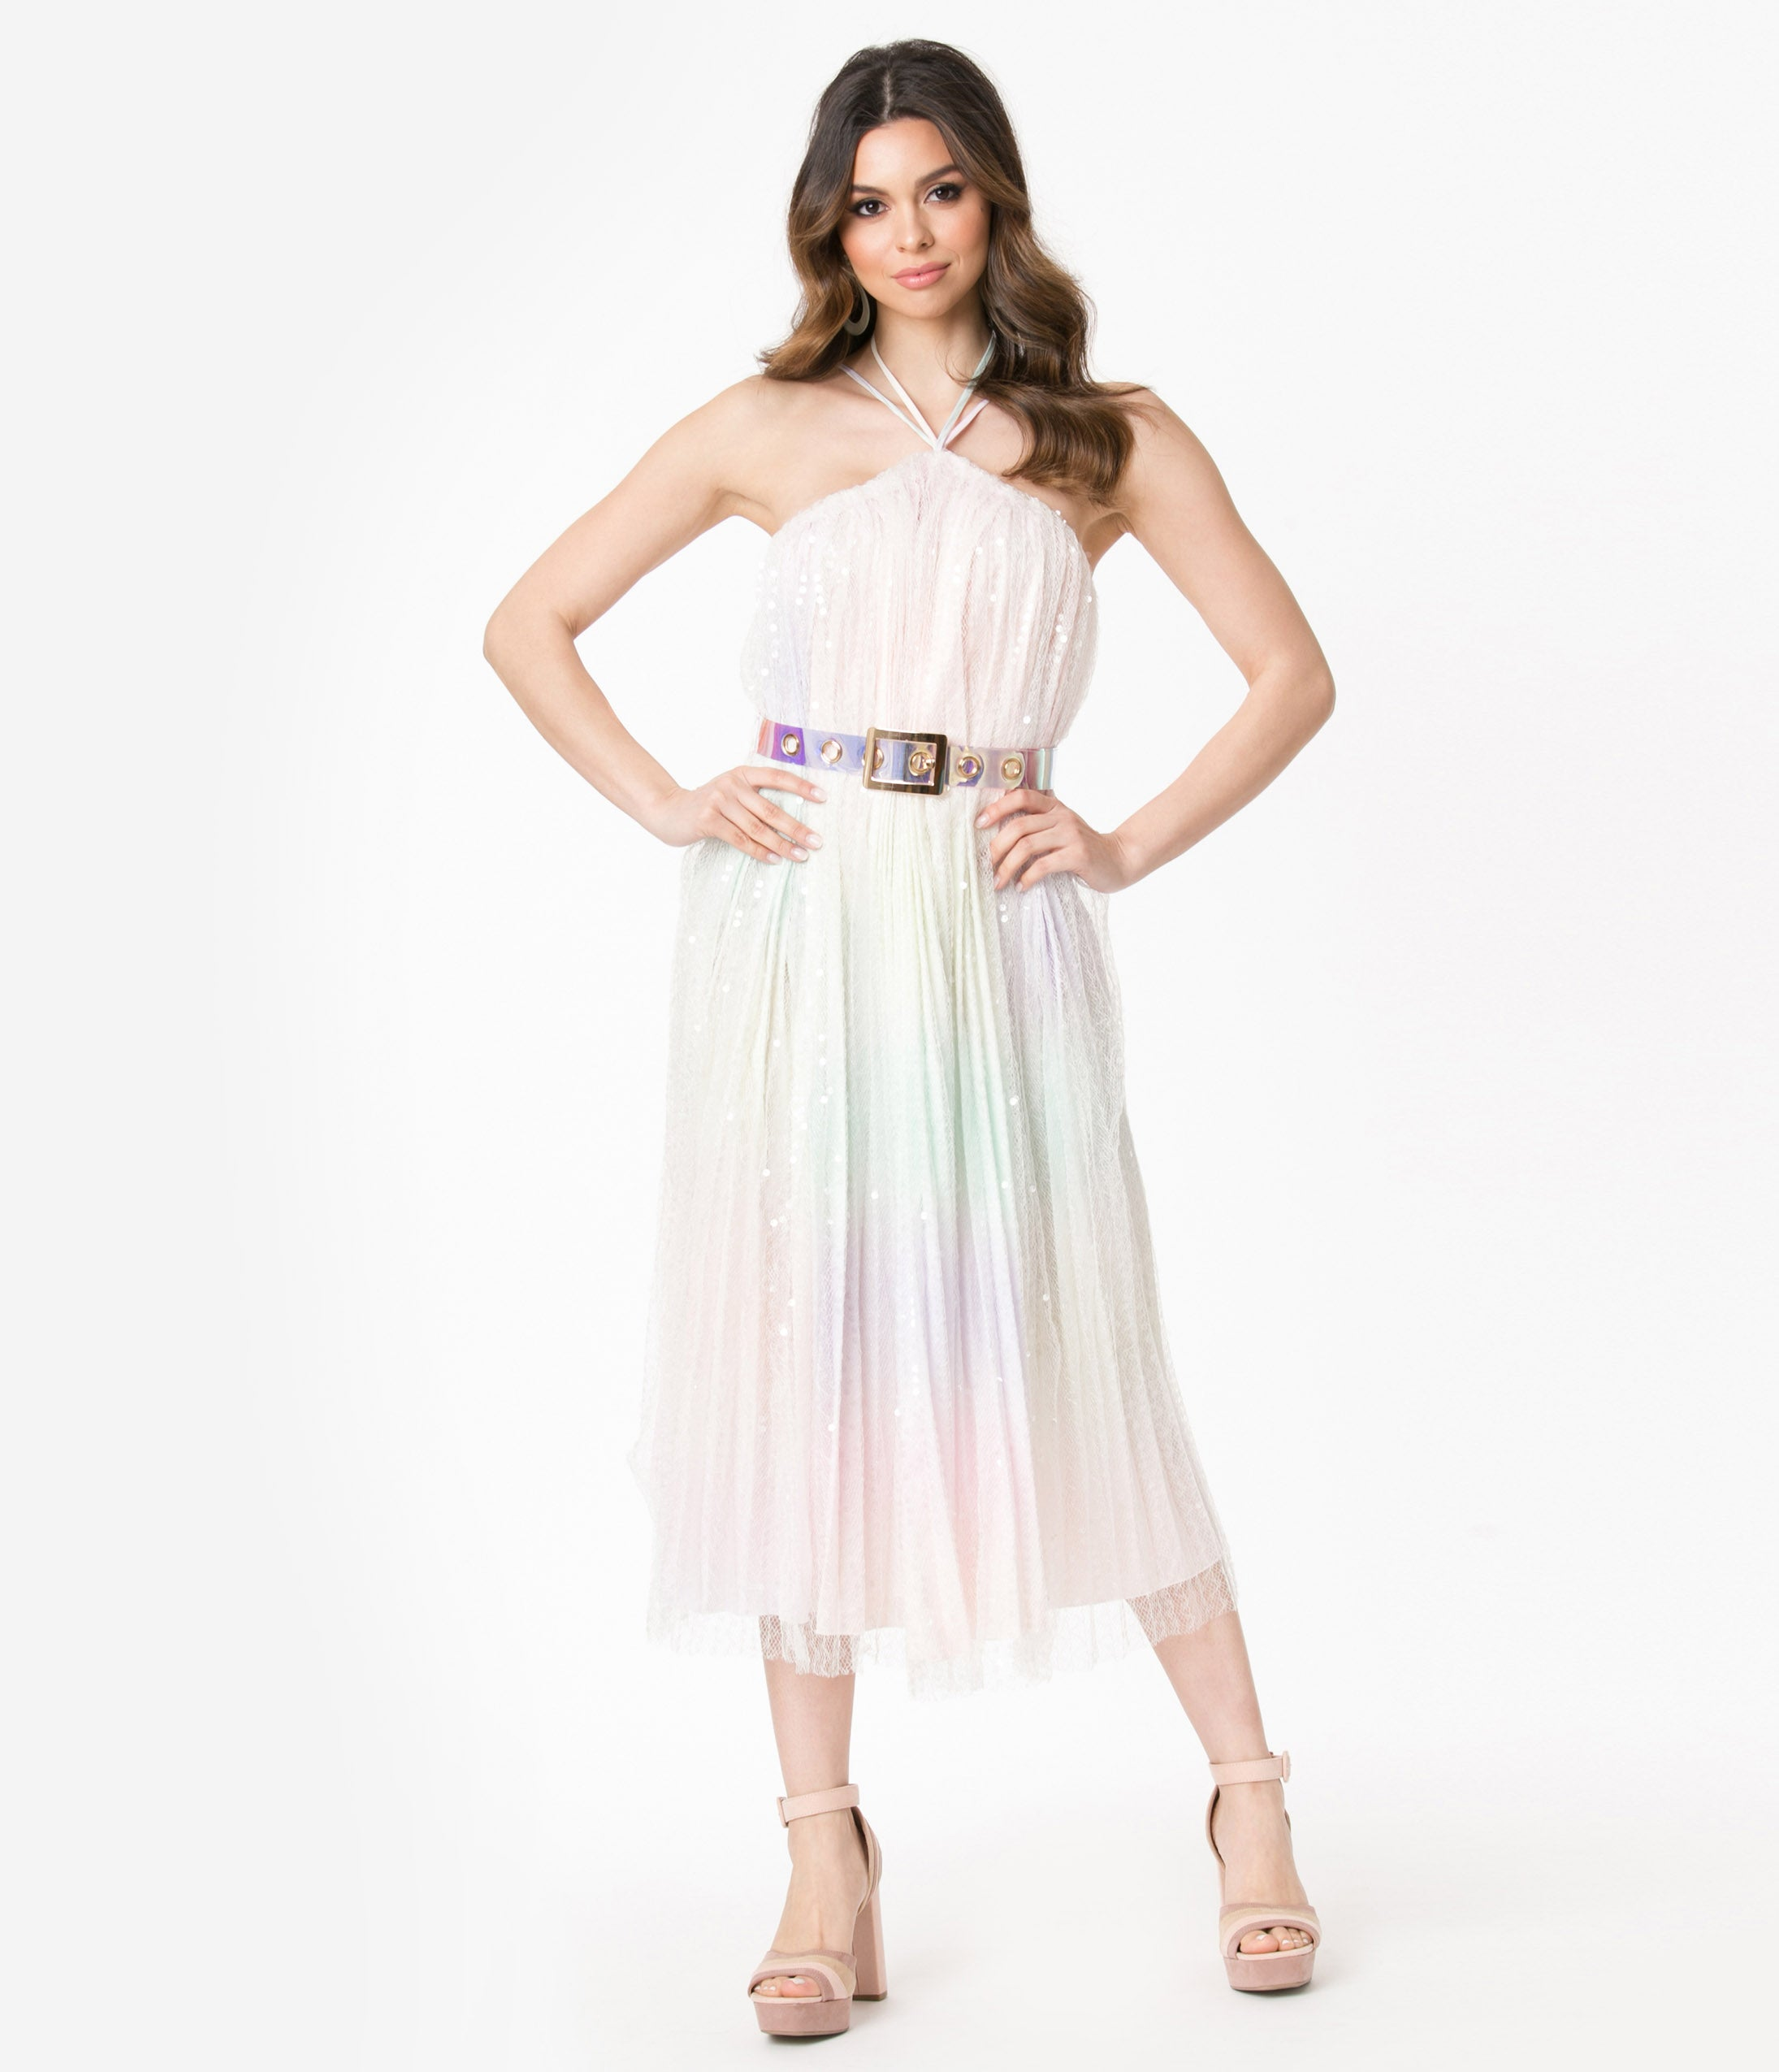 70s Prom, Formal, Evening, Party Dresses Pastel Rainbow Ombre Sequin Midi Dress $88.00 AT vintagedancer.com